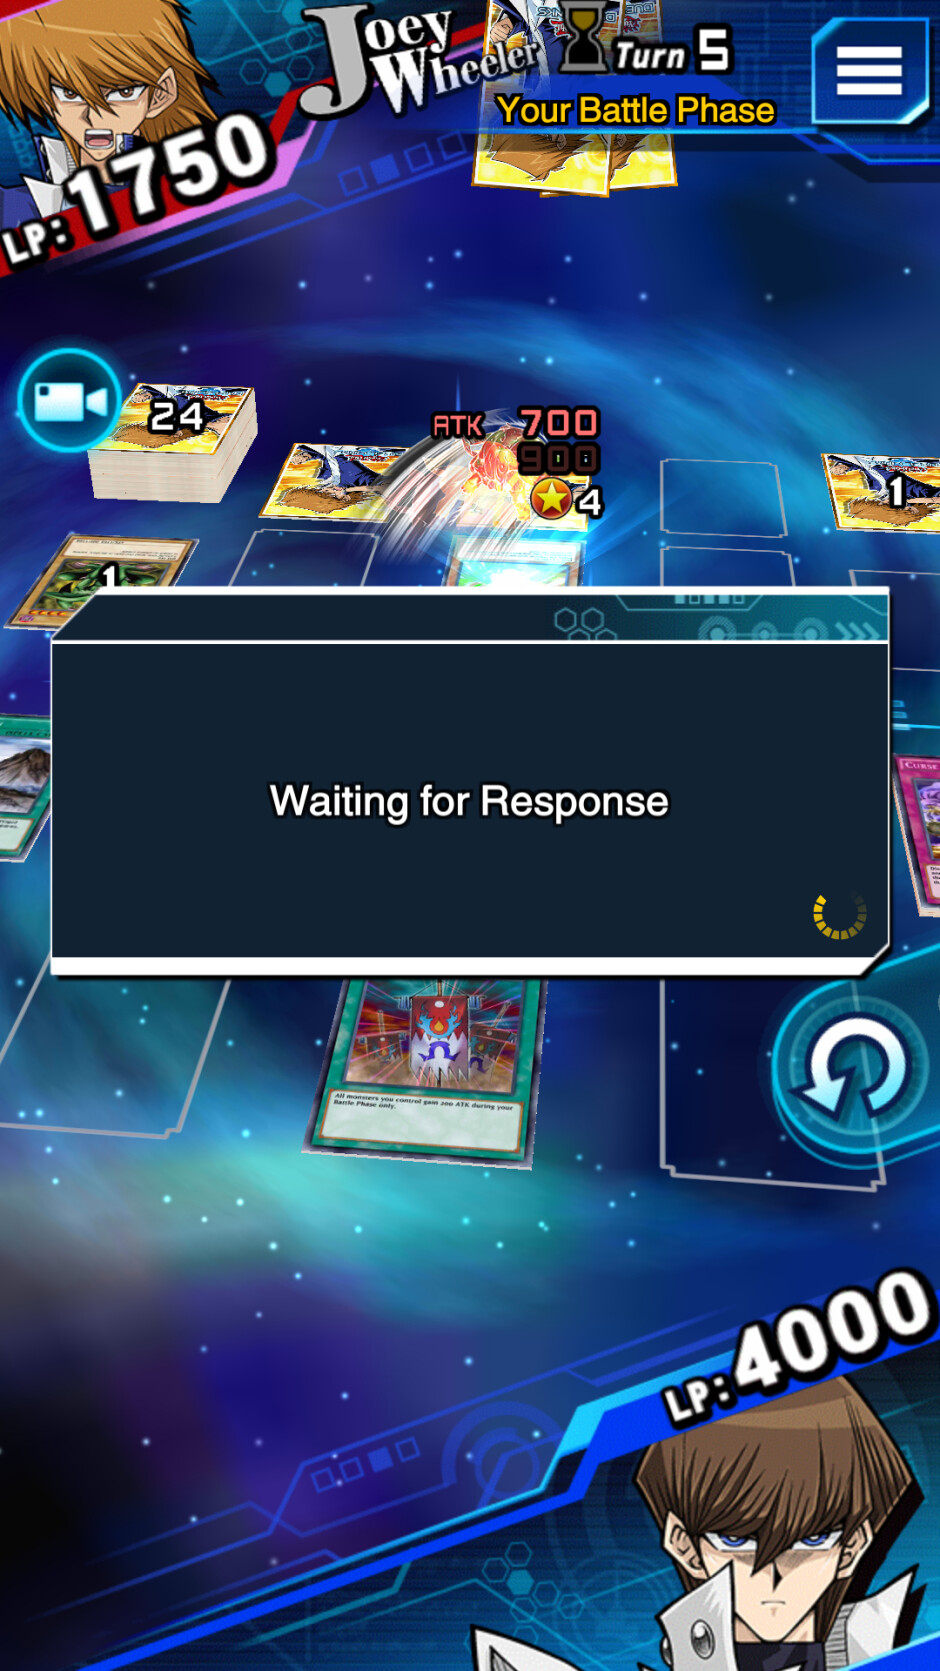 When an opponent quits, you're forced to 'Wait for Response' until you're given the win - Yu-Gi-Oh! Duel Links Review: A mobile reimagination of the classic TCG